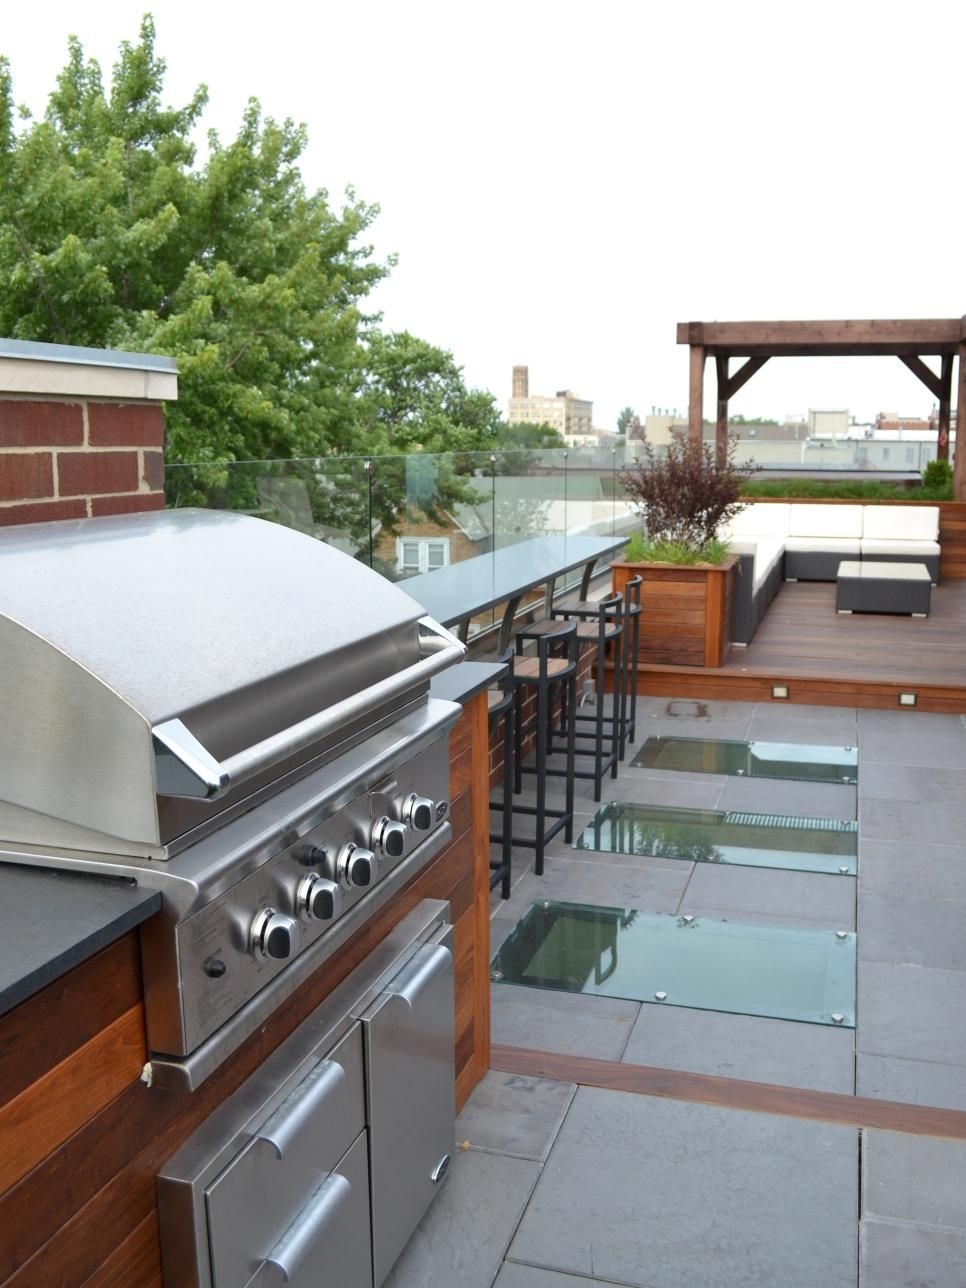 Pictures of outdoor kitchens gas grills cook centers islands